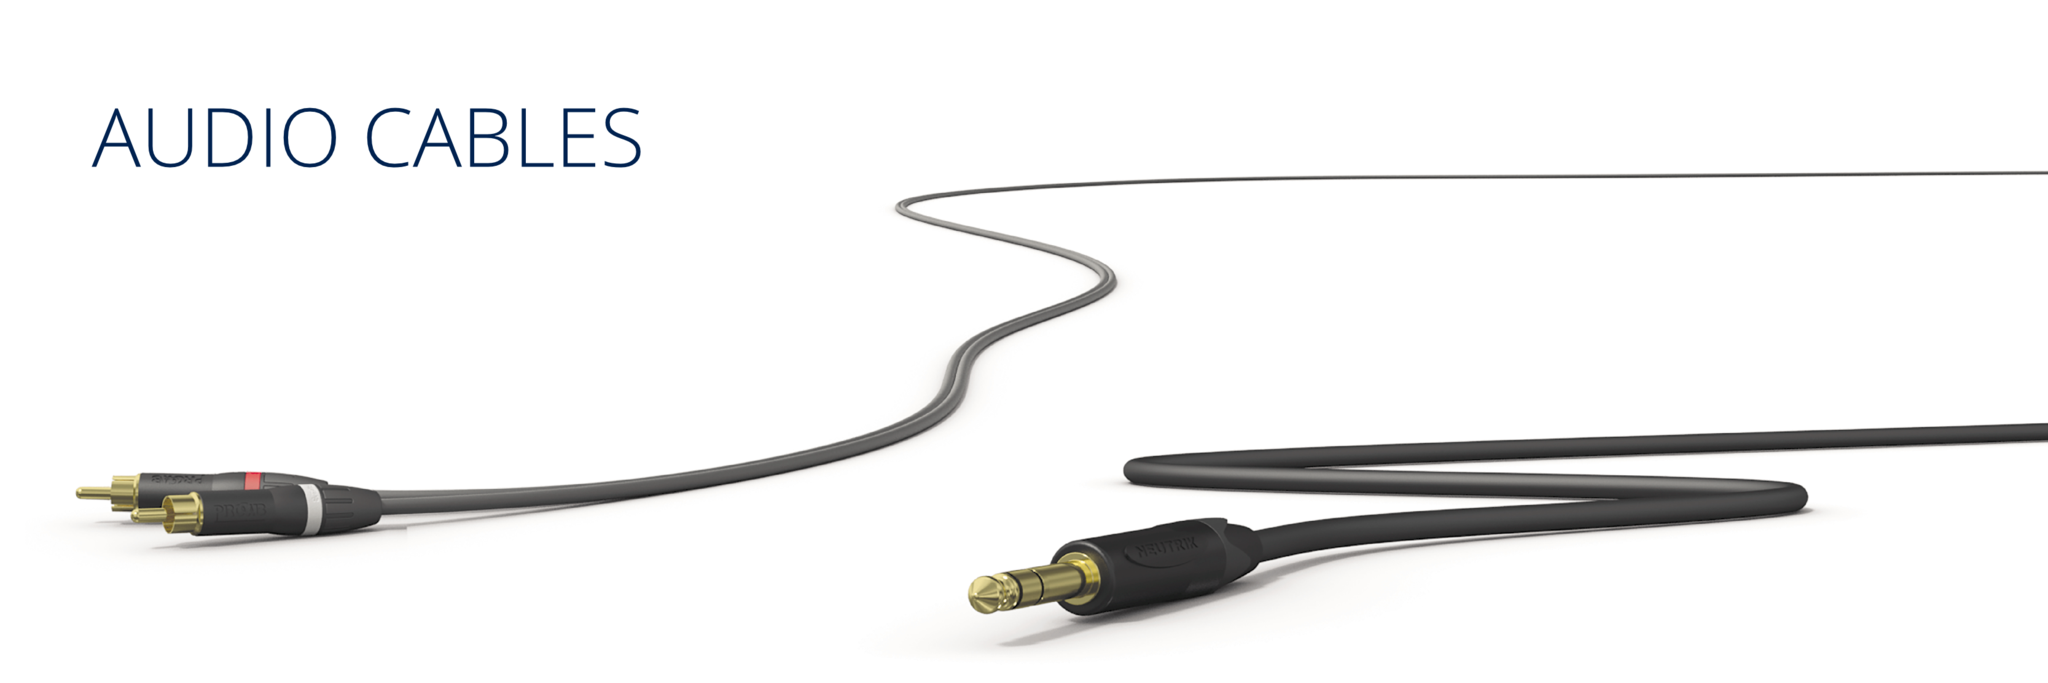 Procab Audio Cables